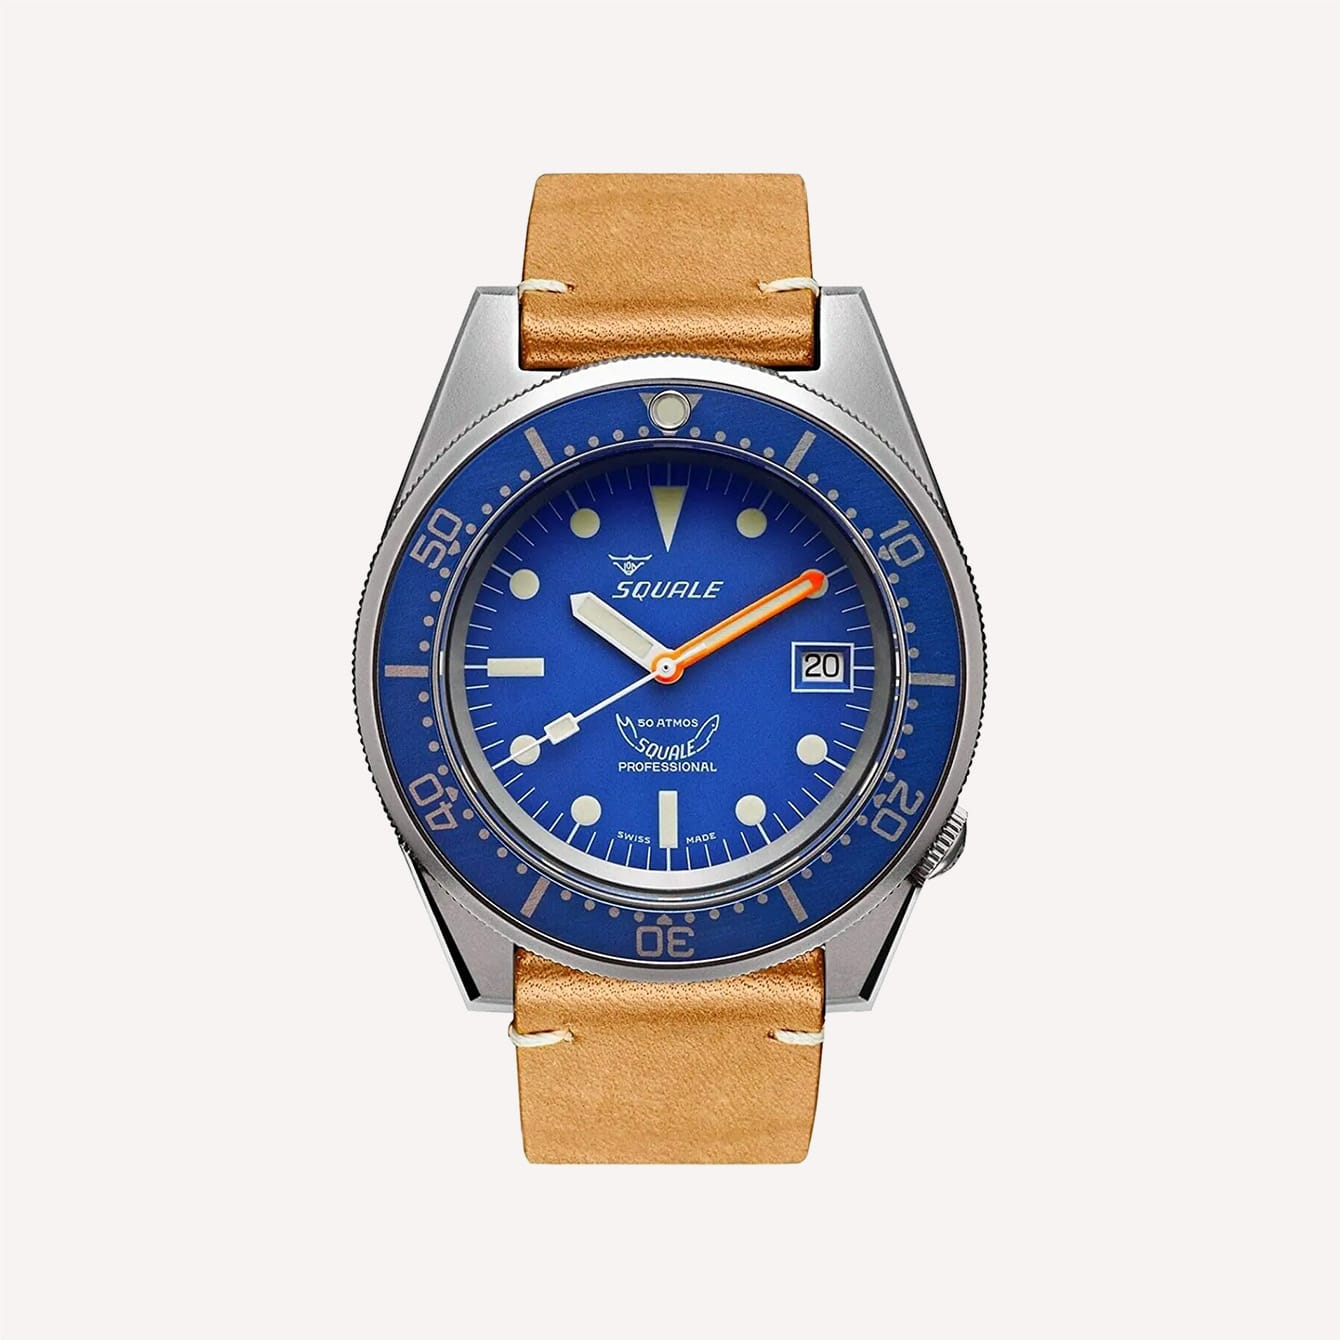 Squale 500 Meter Dive Watch